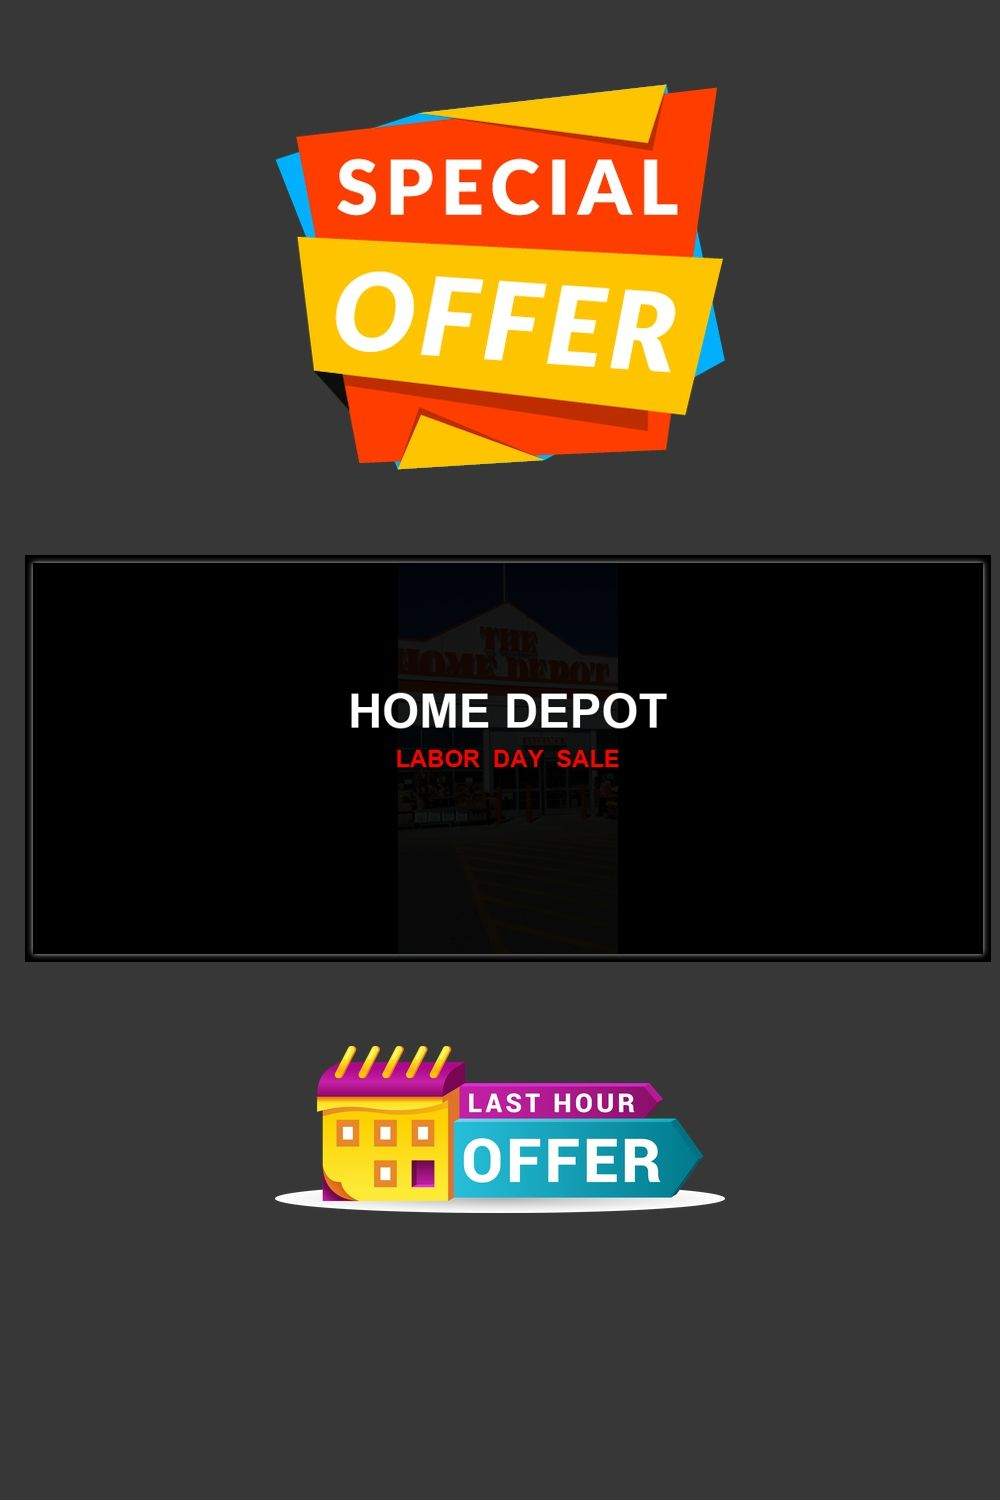 3 Best Home Depot Labor Day Deals Discounts 2020 In 2020 Home Depot Day Depot